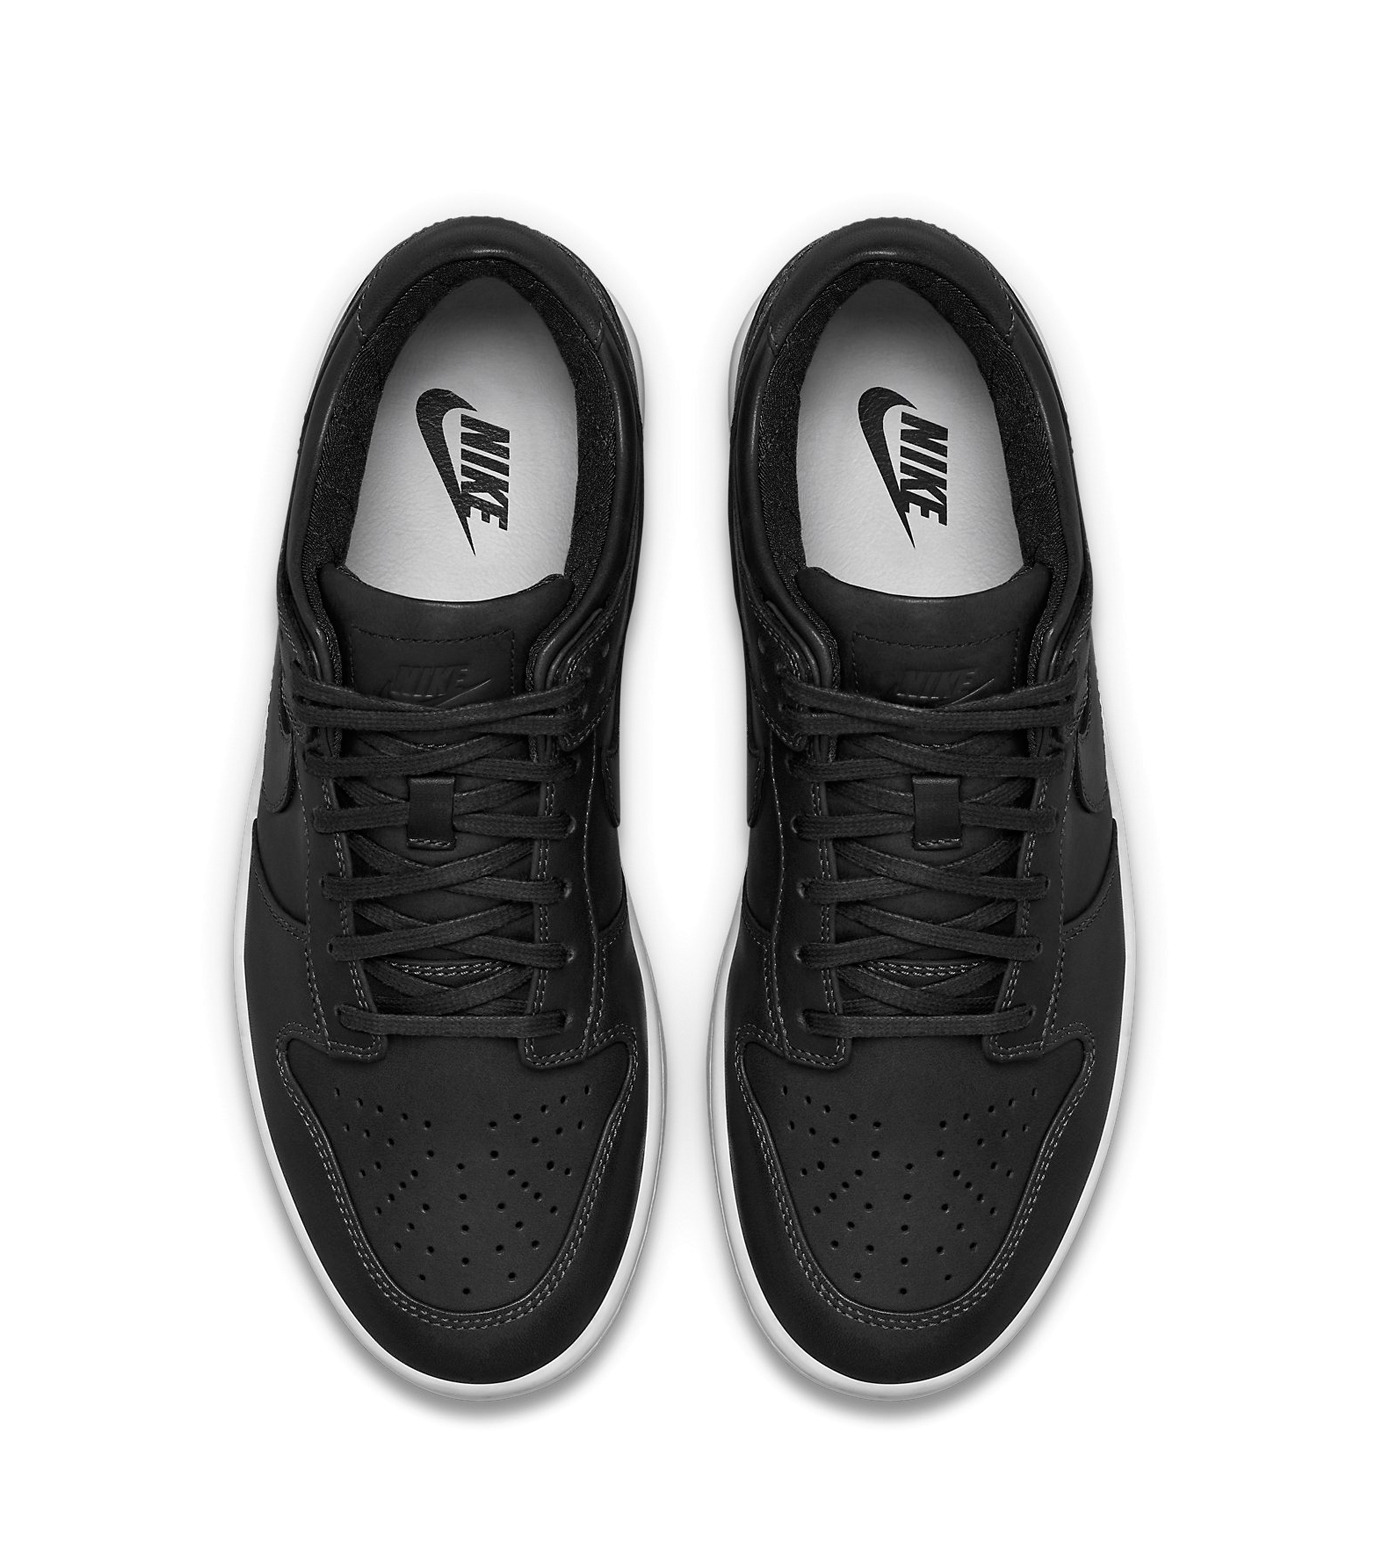 NIKE(ナイキ)のLAB DUNK LUX LOW-BLACK(シューズ/shoes)-857587-001-13 拡大詳細画像4